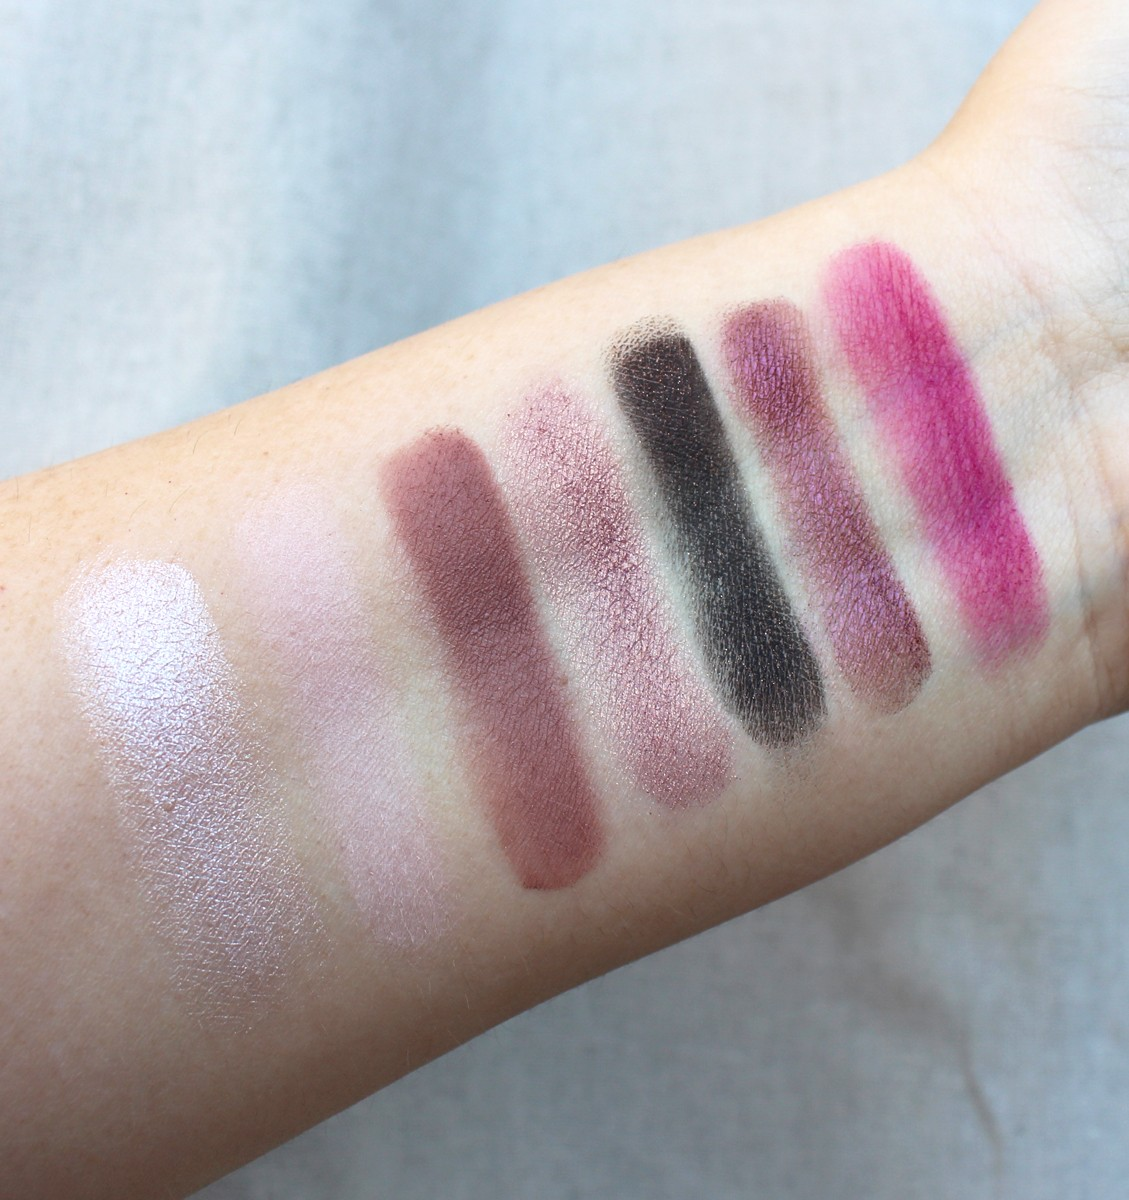 Marc Jacobs Beauty Eye Conic Eyeshadow Palette Provocouture Swatches